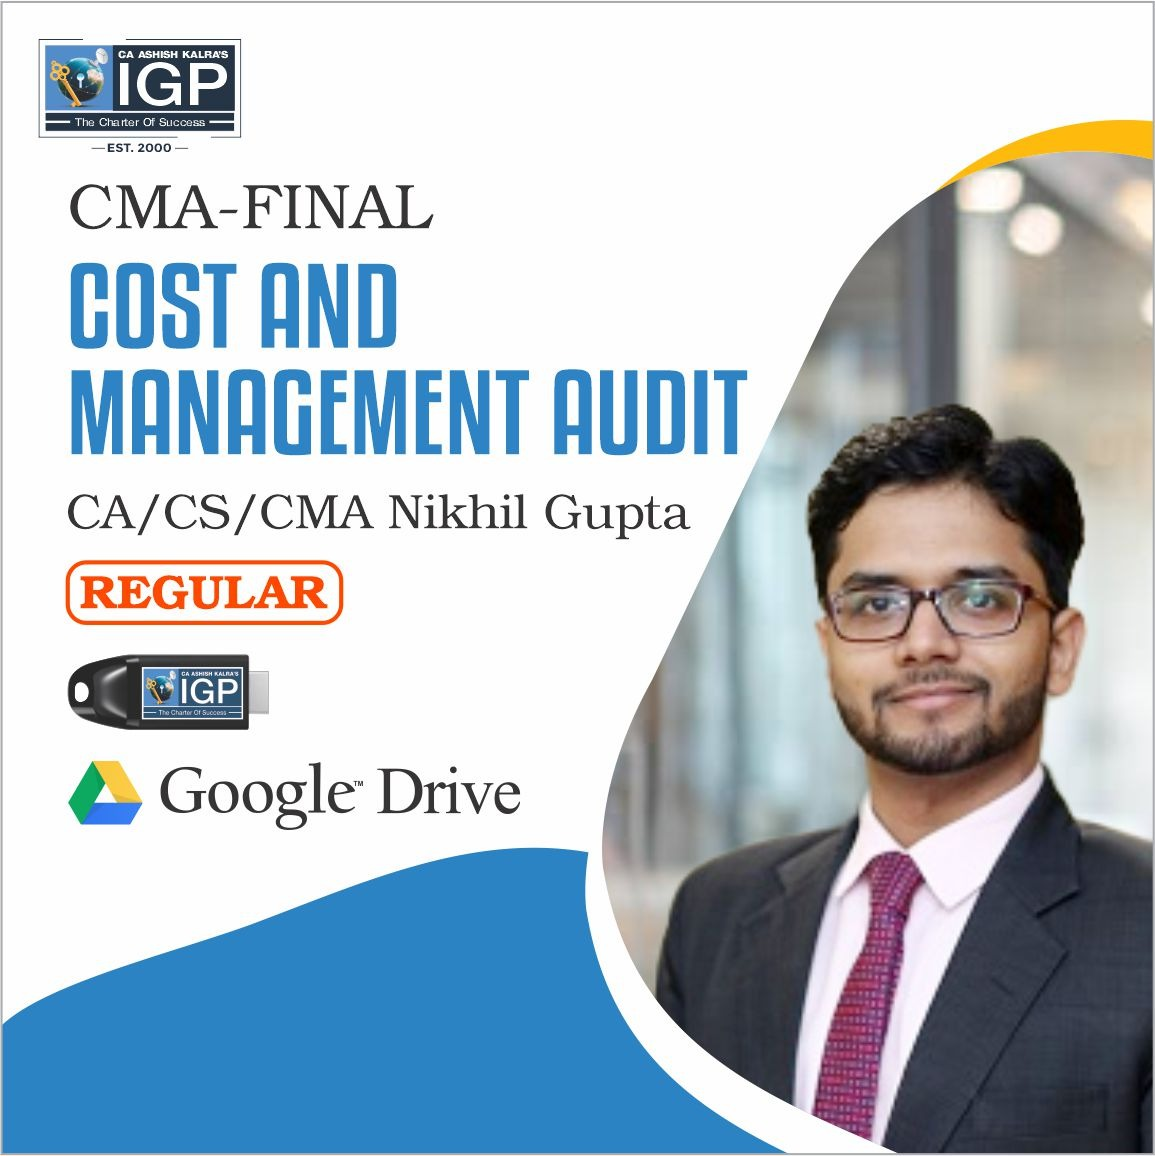 CMA-COST AND MANAGEMENT AUDIT-CA/CS/CMA NIKKHIL GUPTA